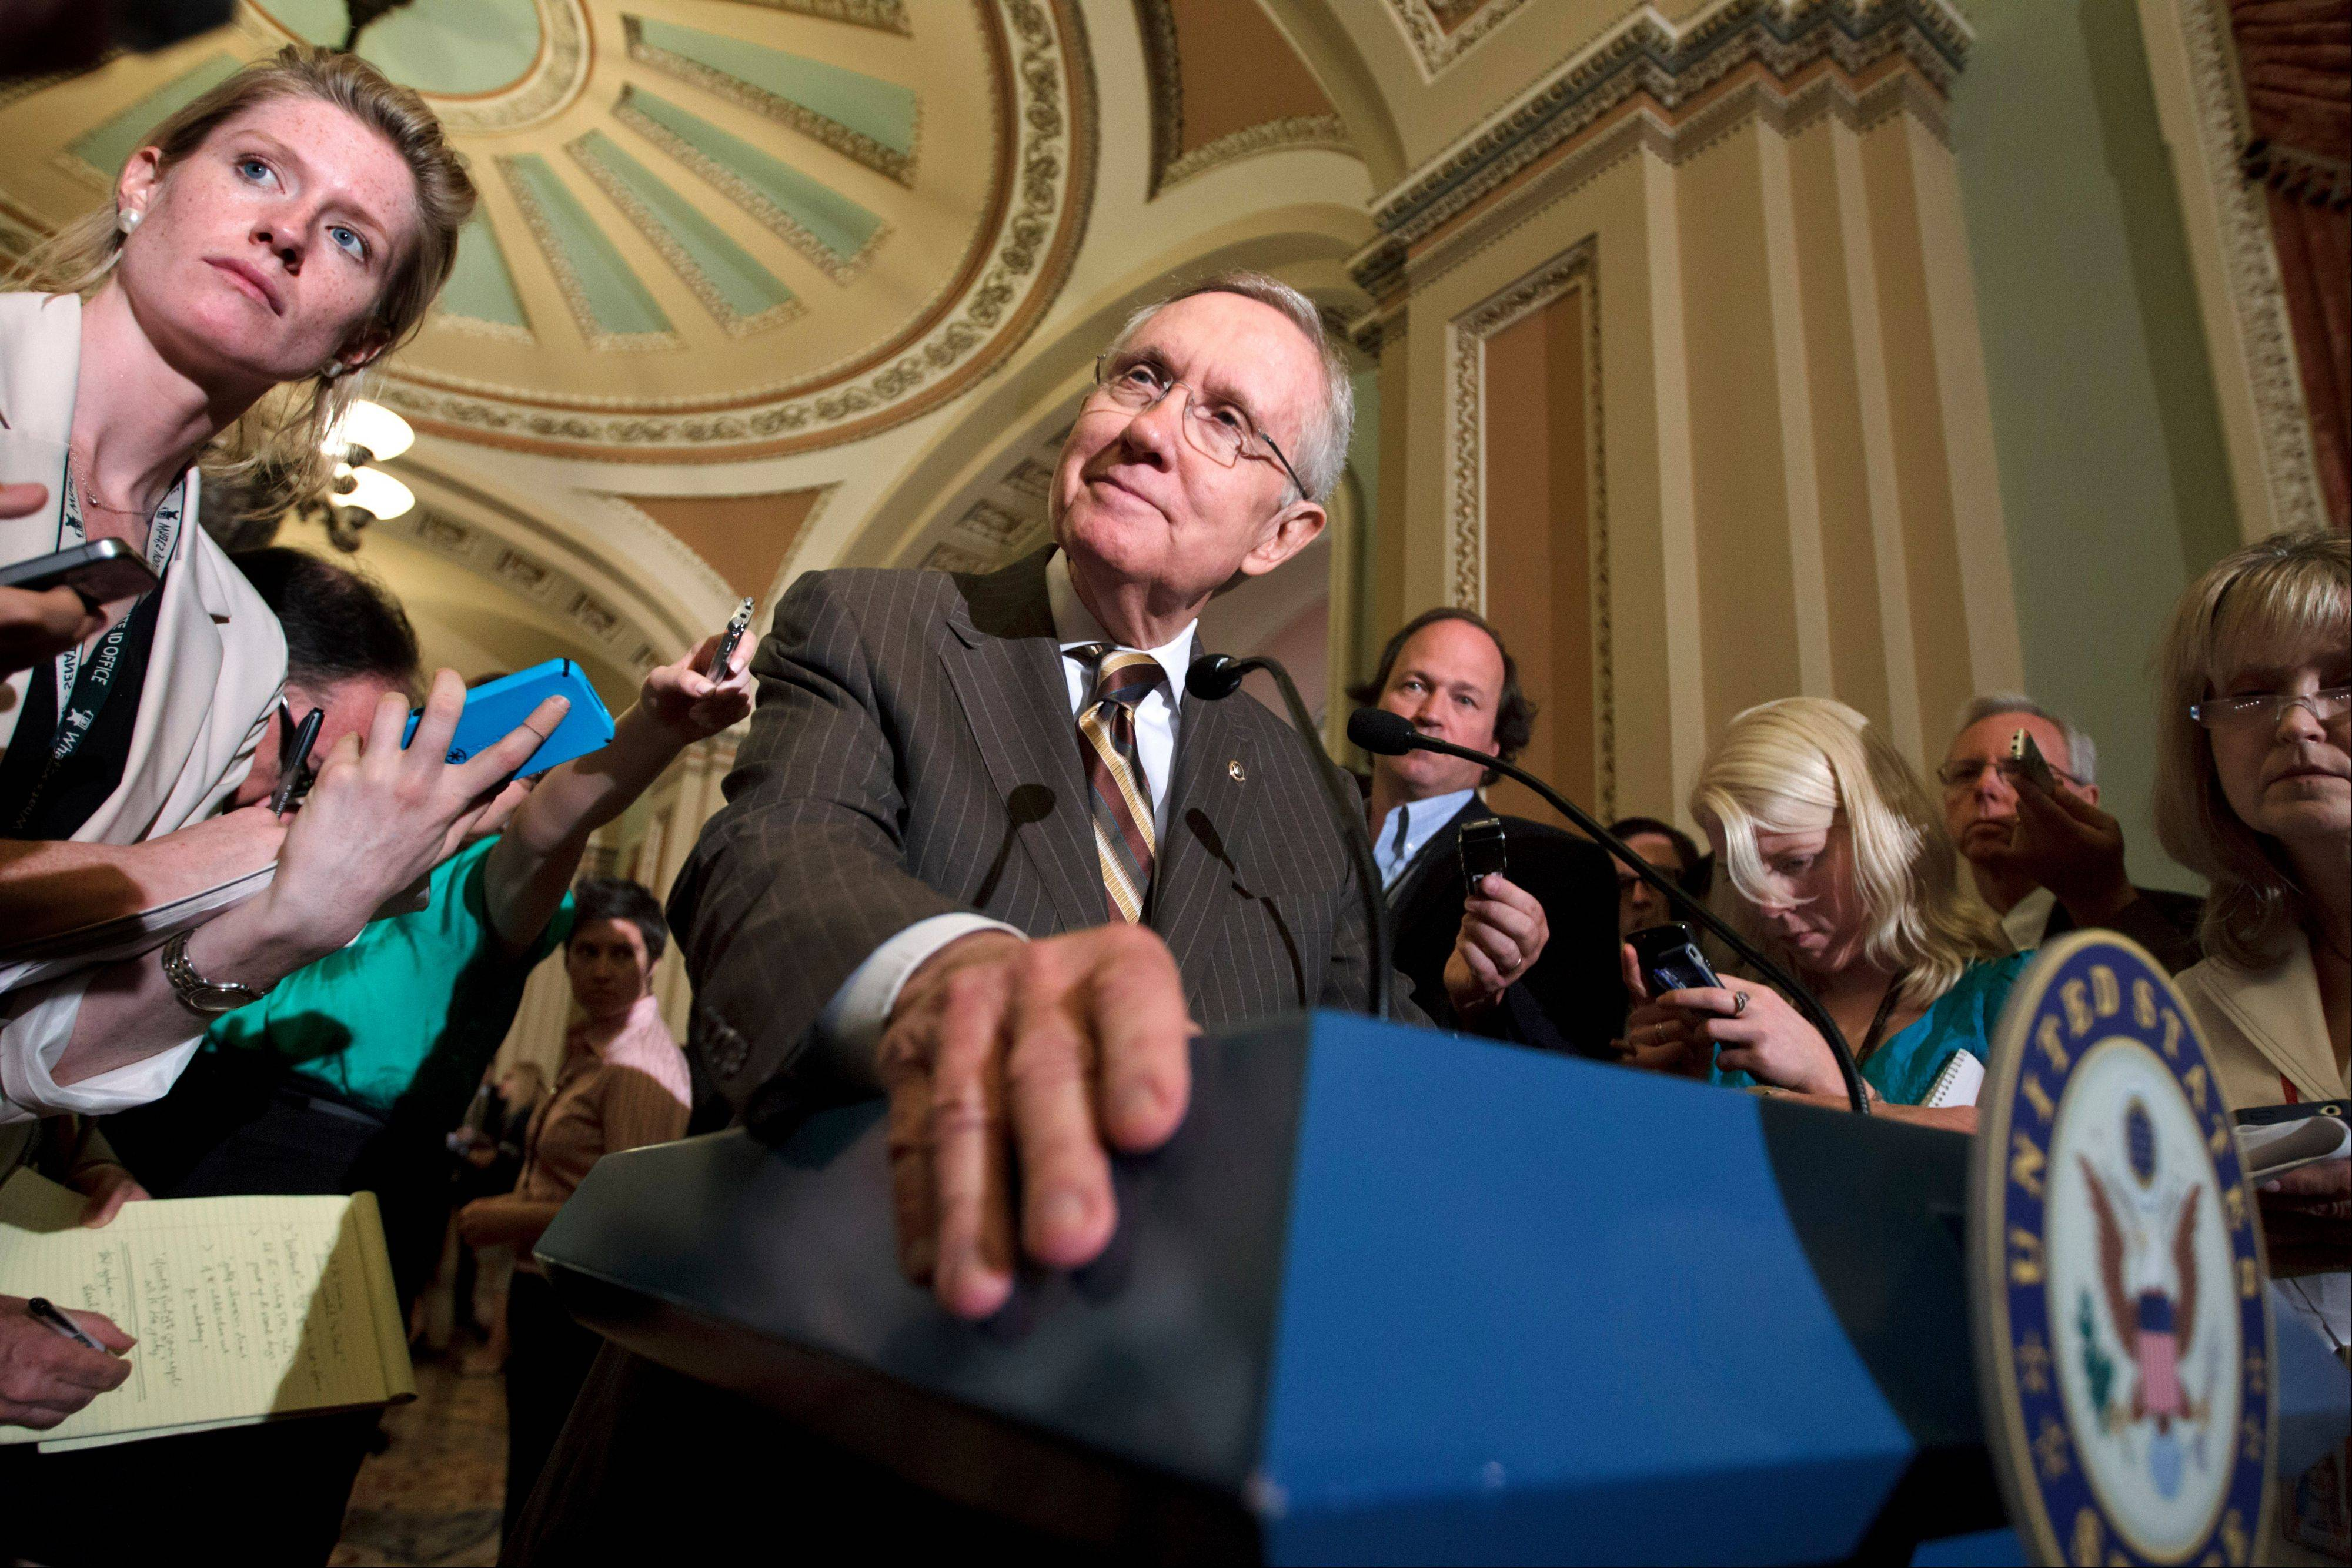 Senate Majority Leader Harry Reid announces to reporters on Capitol Hill Tuesday that he and GOP House Speaker John Boehner have reached an agreement to keep the government running on autopilot for six months when the current budget year ends Sept. 30.